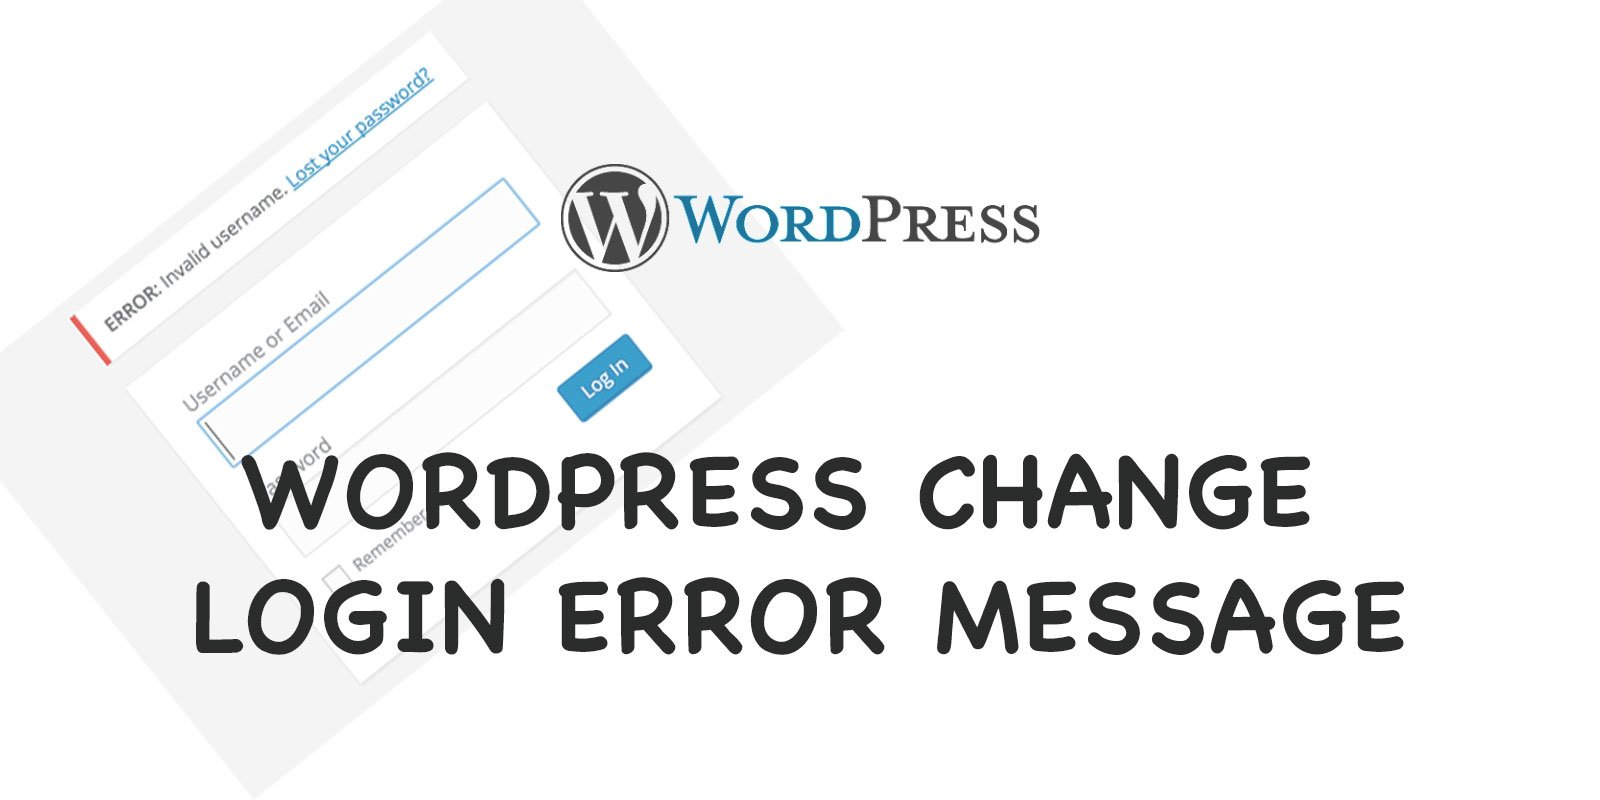 wordpress change login error message